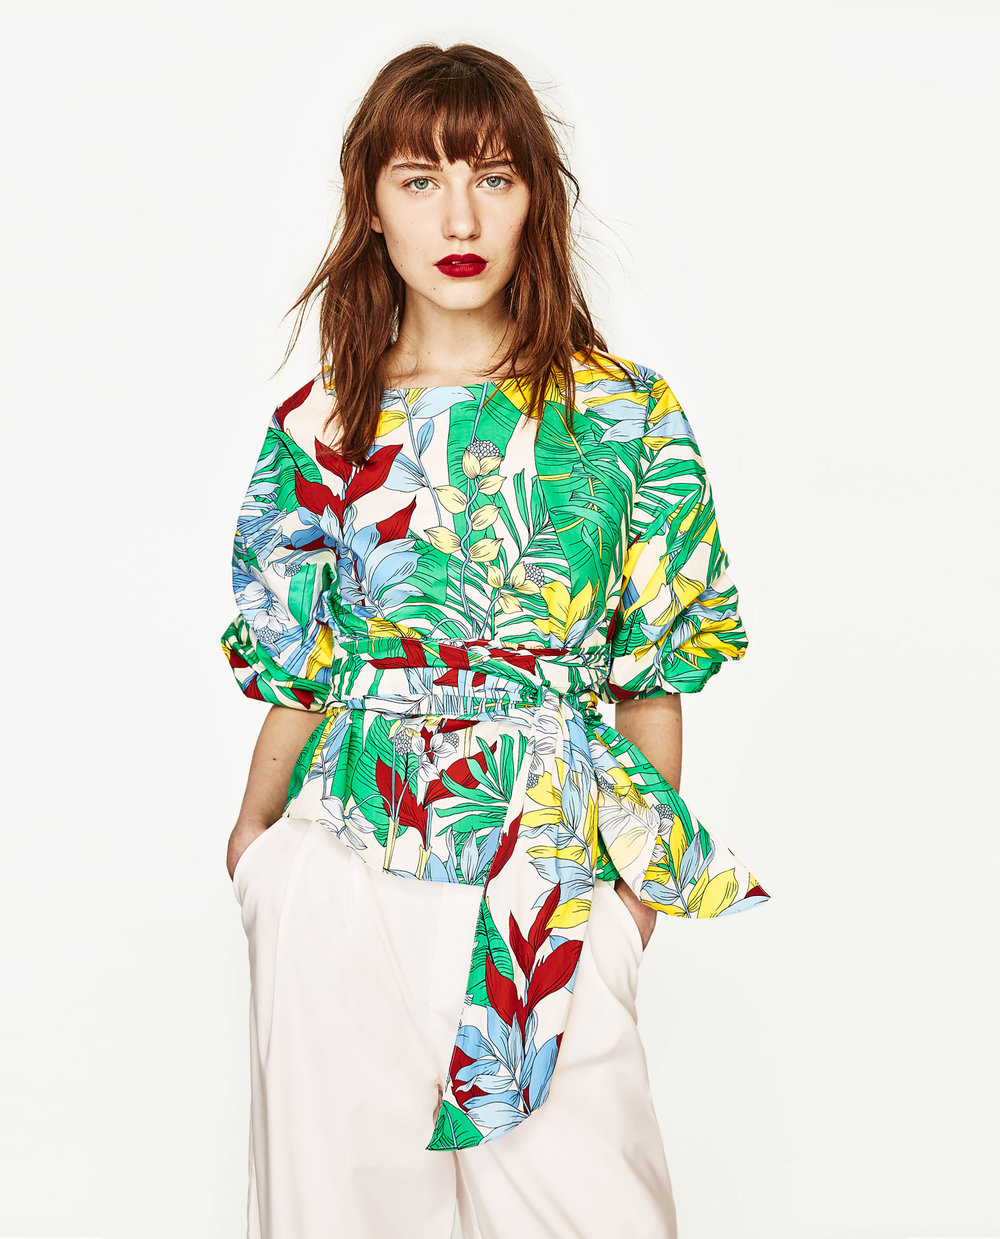 FLOWER POWER  Large print floral wrap top from Zara £39.99